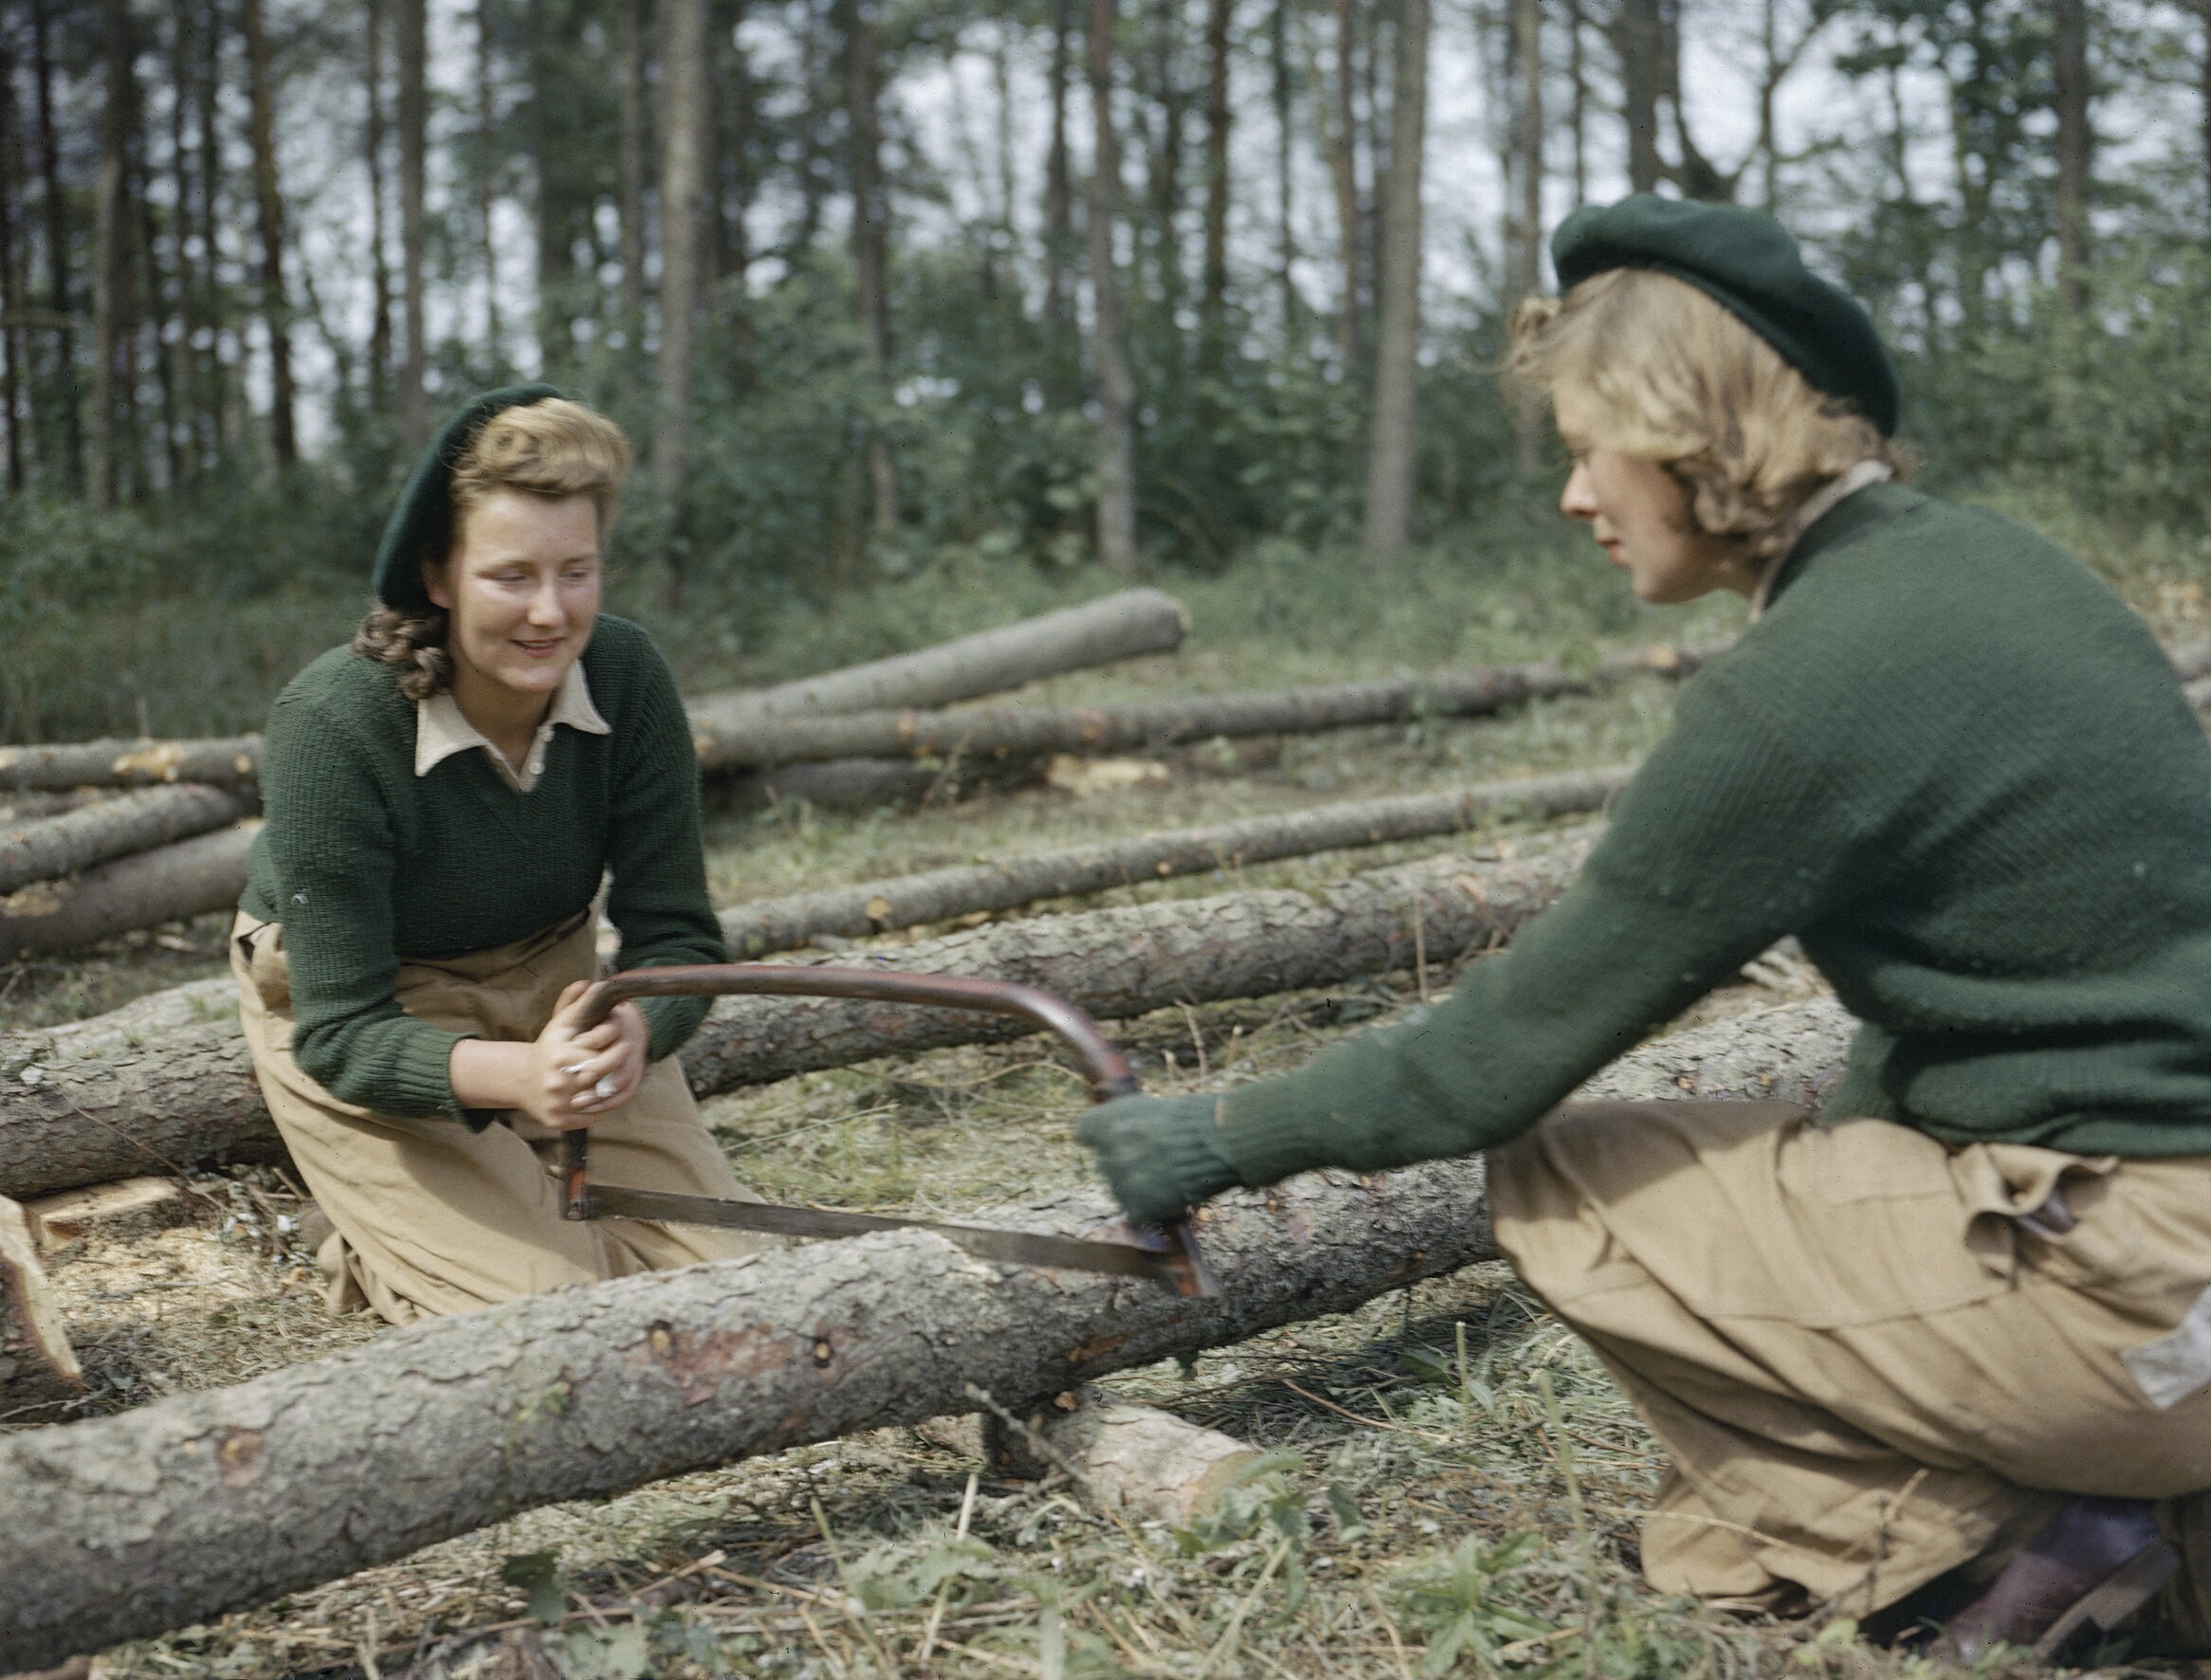 external image Land_Army_girls_sawing_larch_poles_for_use_as_pit_props_at_the_Women's_Timber_Corps_training_camp_at_Culford_in_Suffolk._TR912.jpg